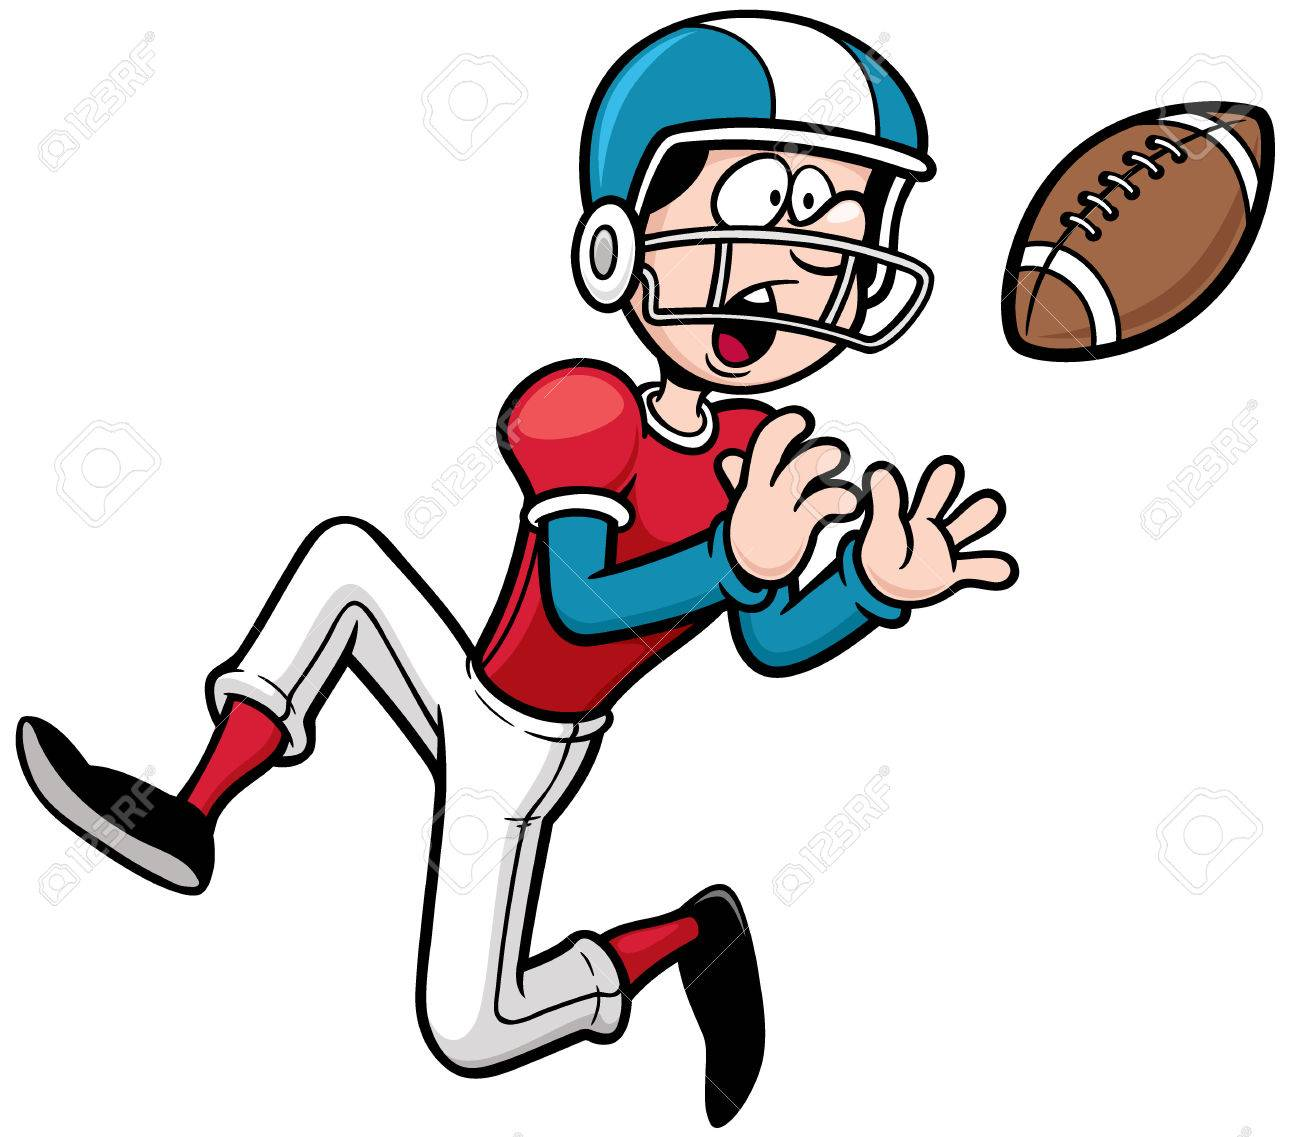 Vector Illustration Of Cartoon American Football Player Royalty Free Cliparts Vectors And Stock Illustration Image 31526217